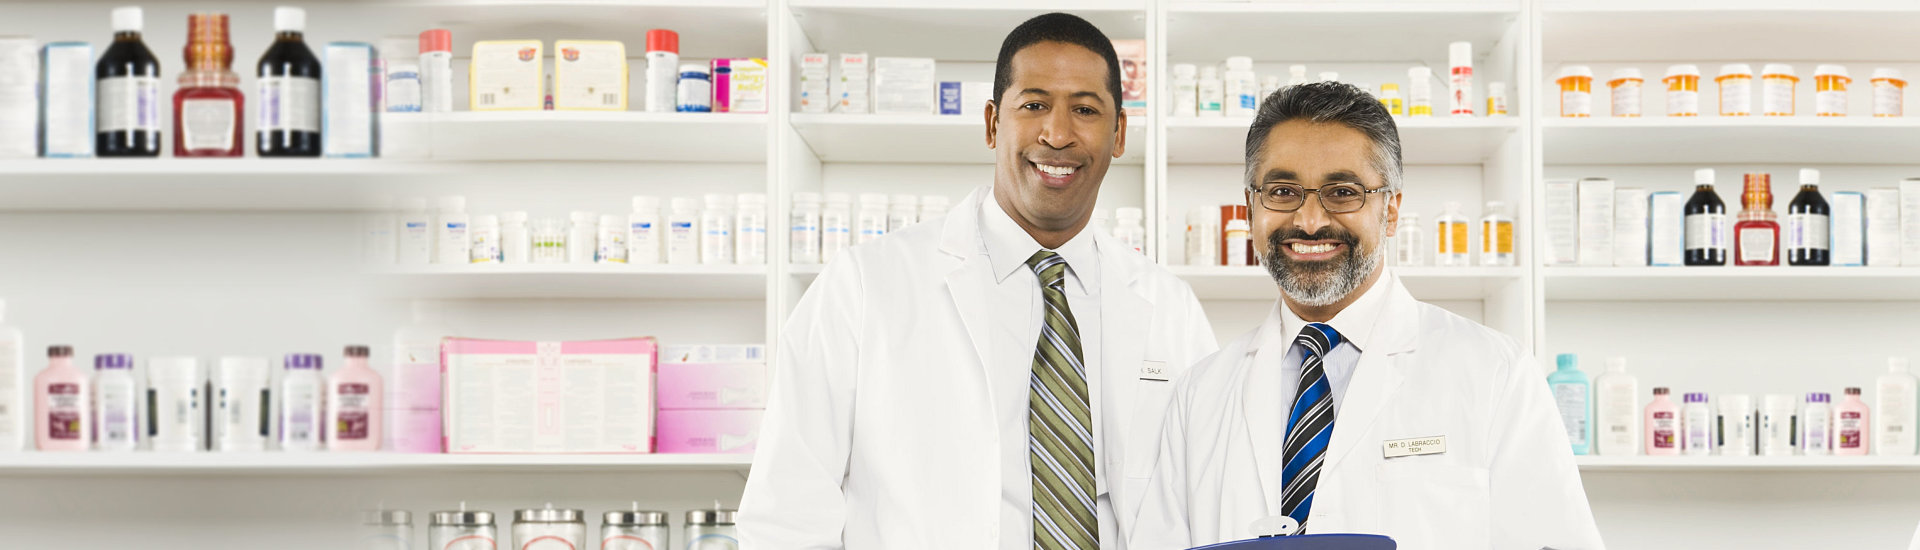 Portrait of two male pharmacists